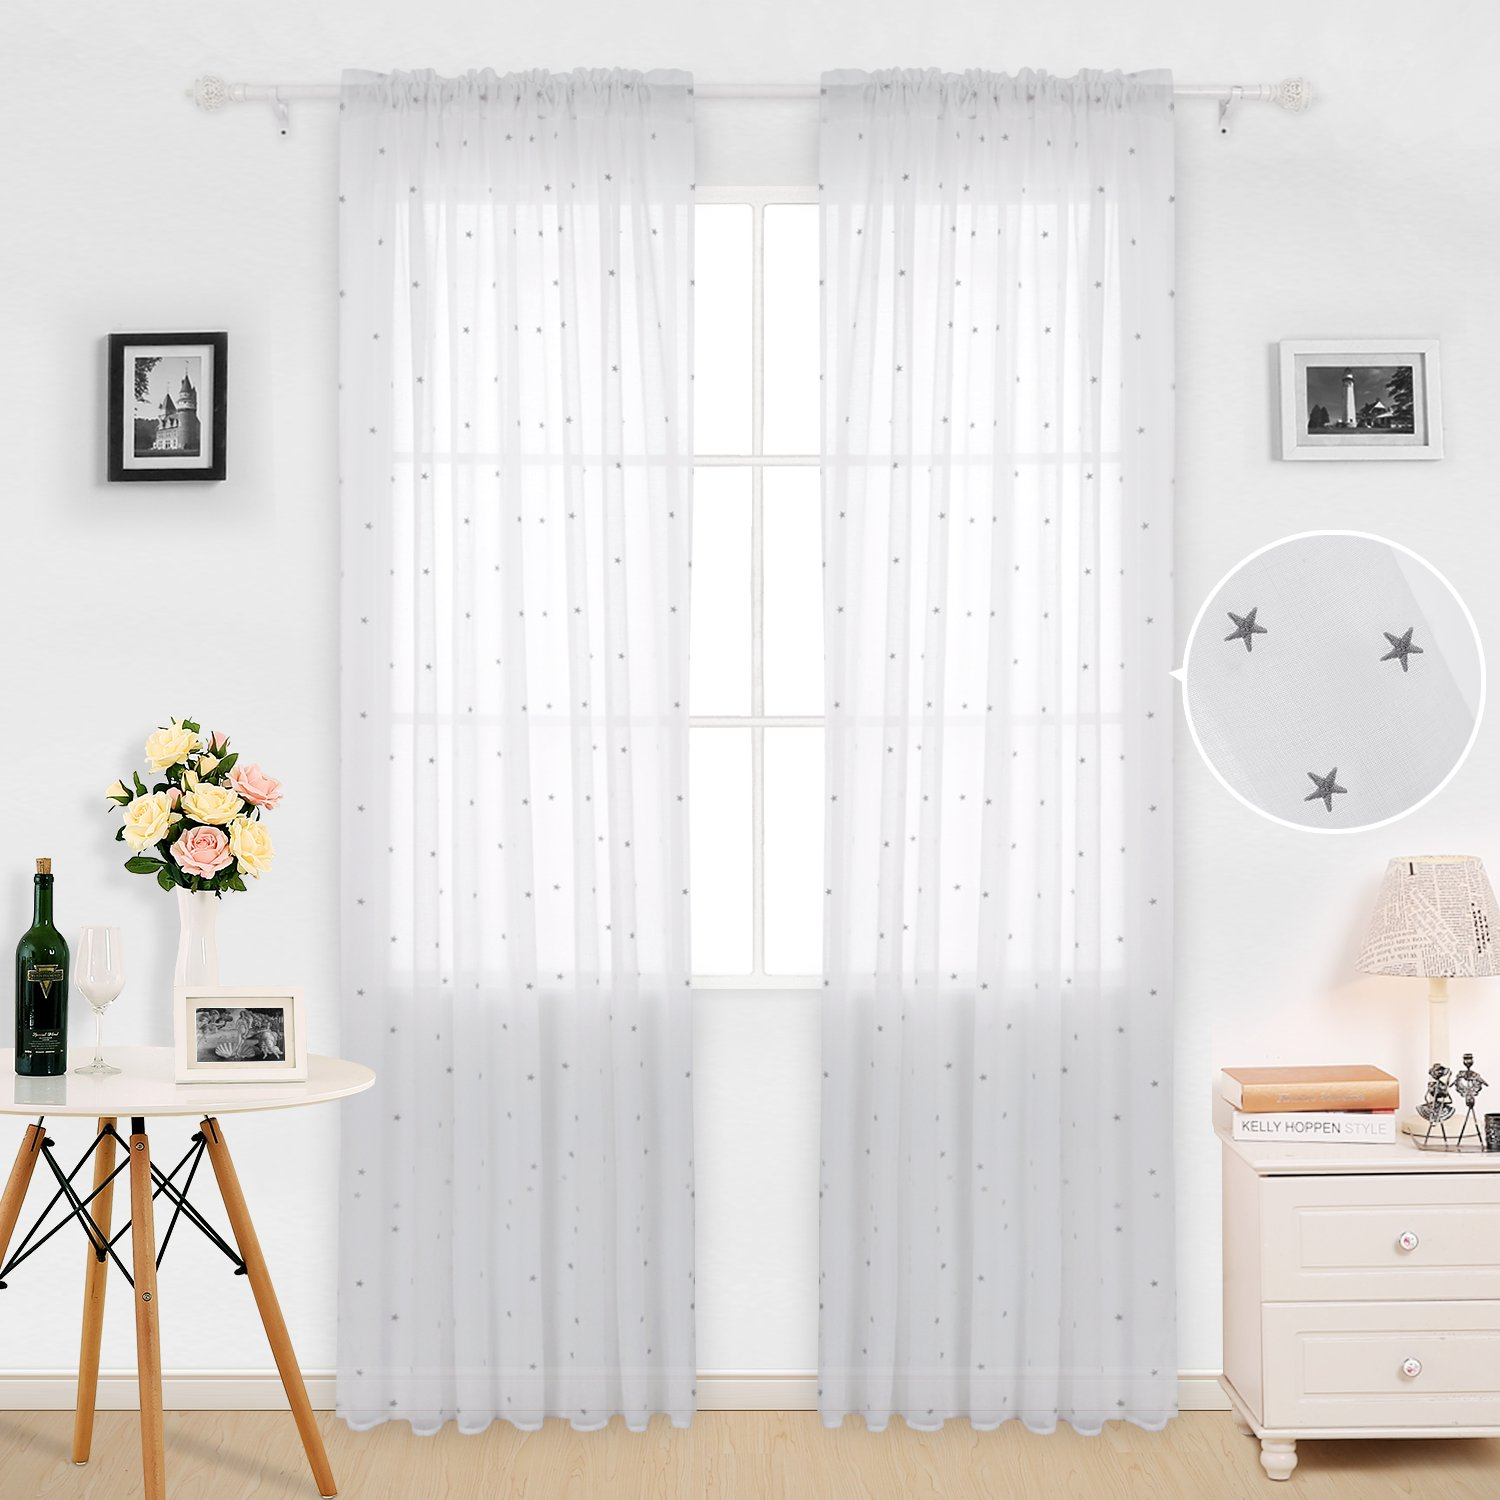 36 Inch Room Darkening Curtains Cheap Curtains 36 Length Find Curtains 36 Length Deals On Line At